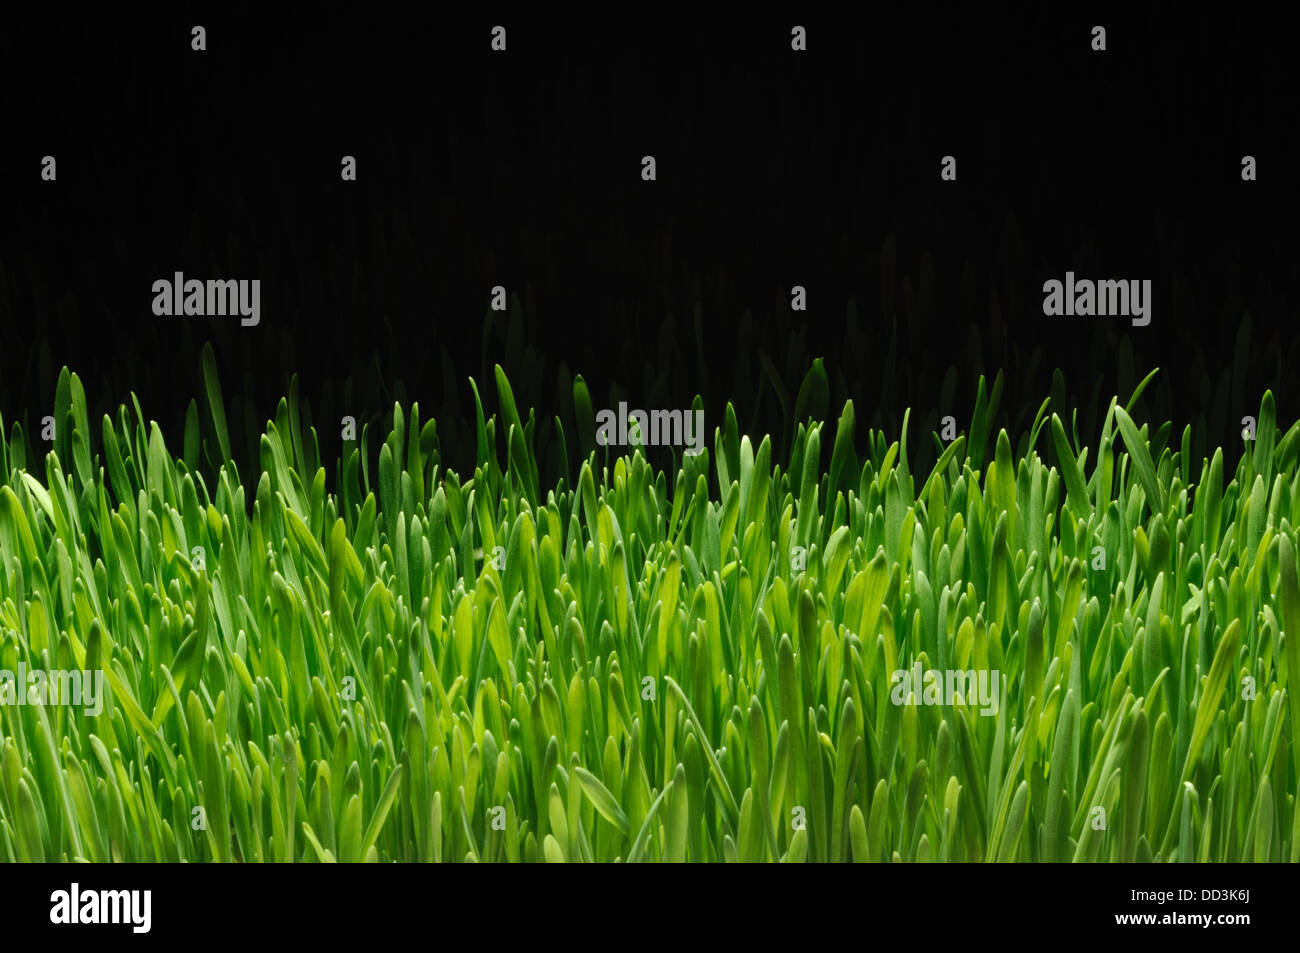 A section of growing green grass on a black background - Stock Image